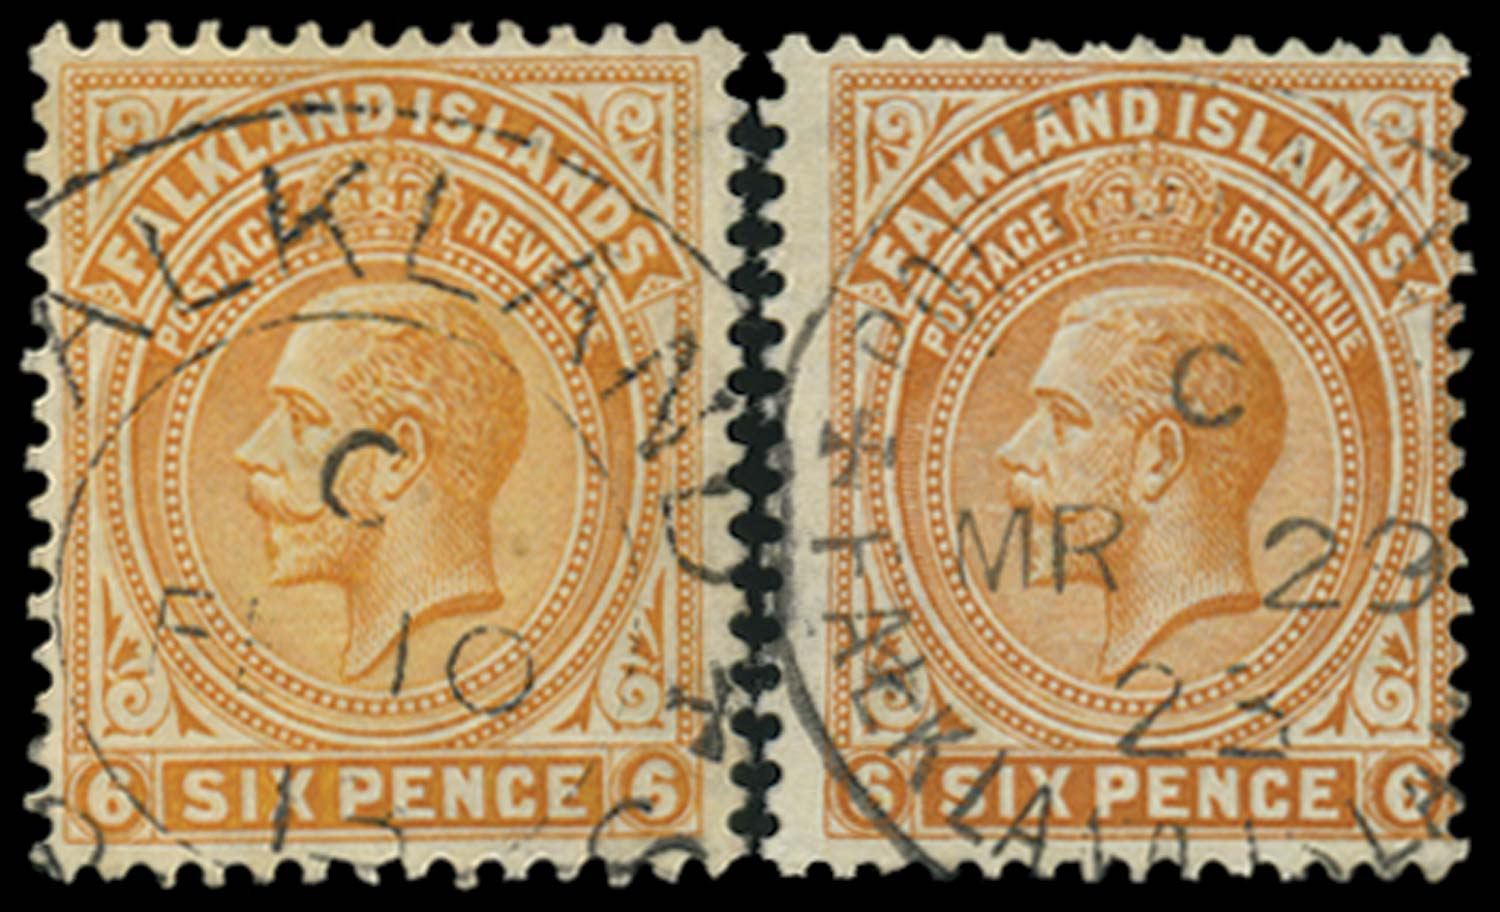 FALKLAND ISLANDS 1912  SG64,b Used